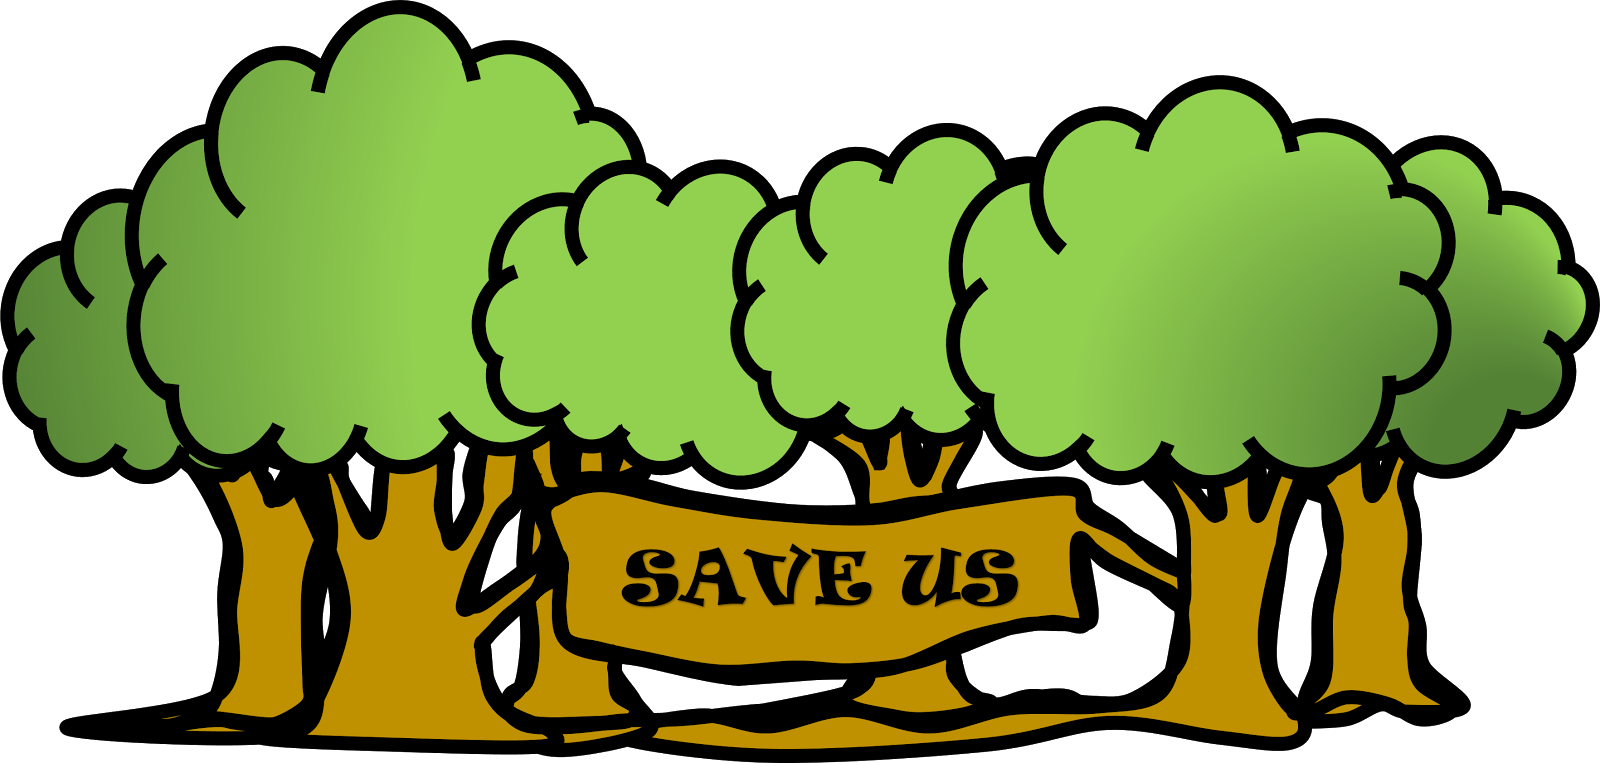 Save trees clipart 6 » Clipart Station.